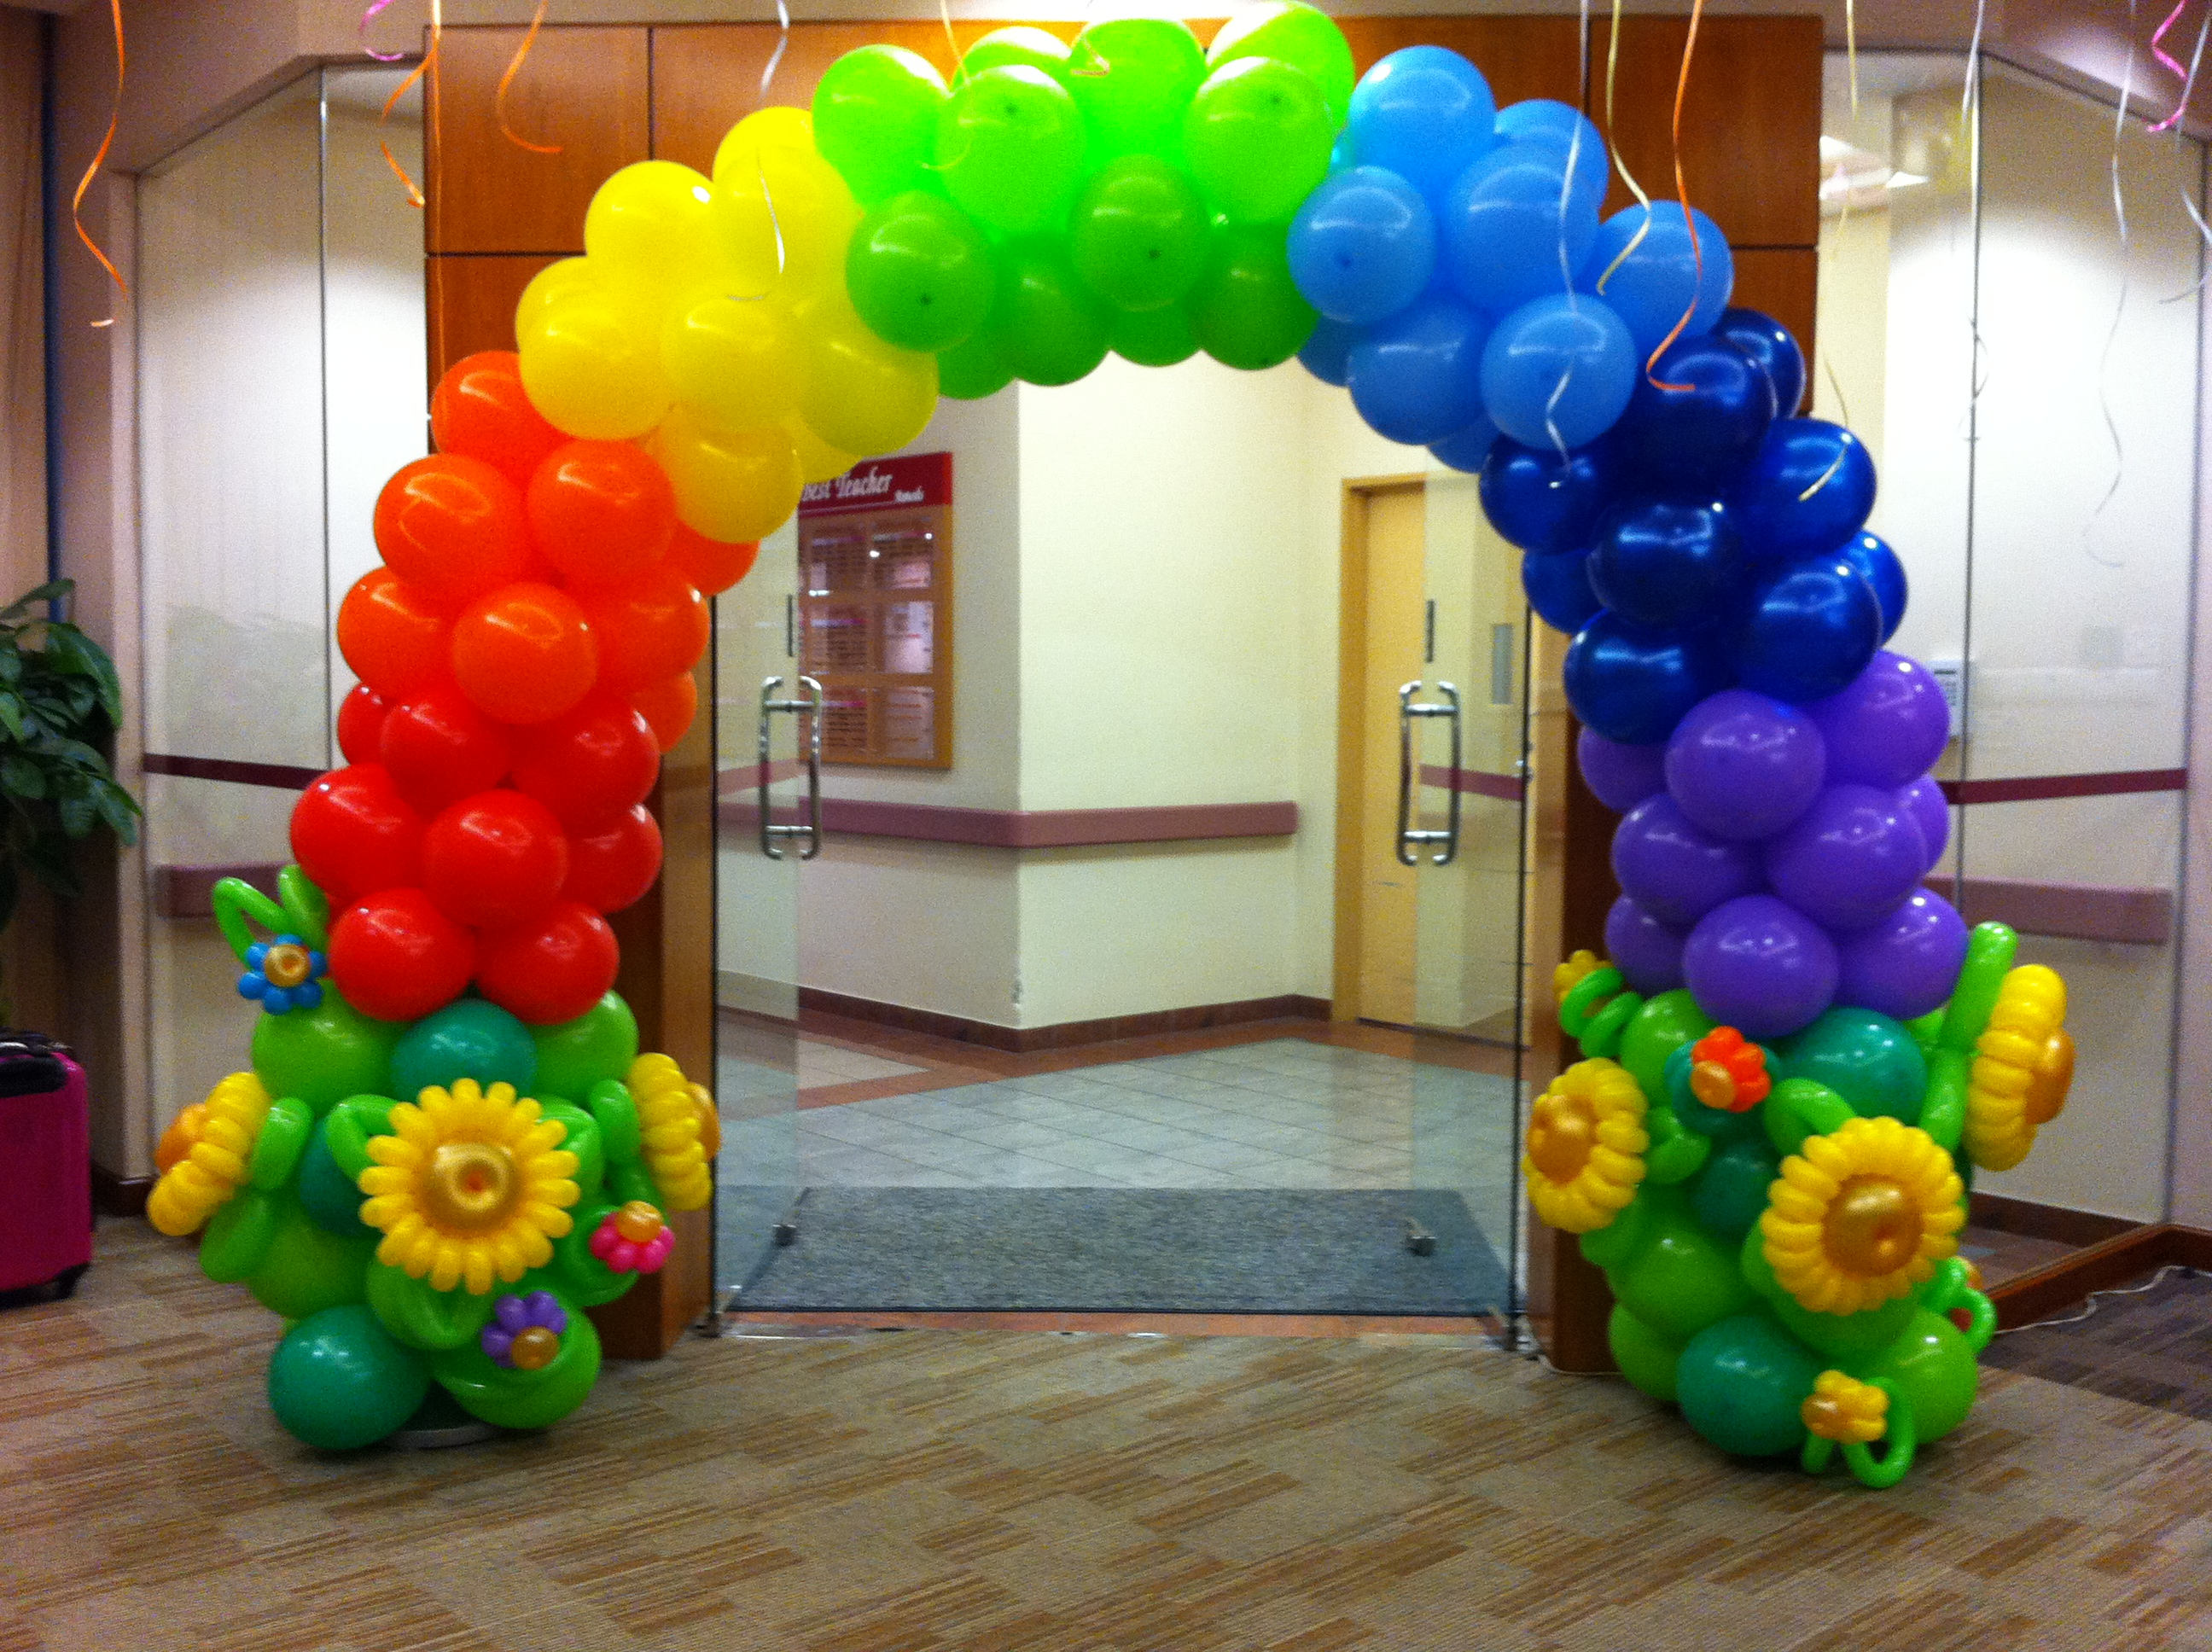 singapore balloon rainbow arch that balloons. Black Bedroom Furniture Sets. Home Design Ideas